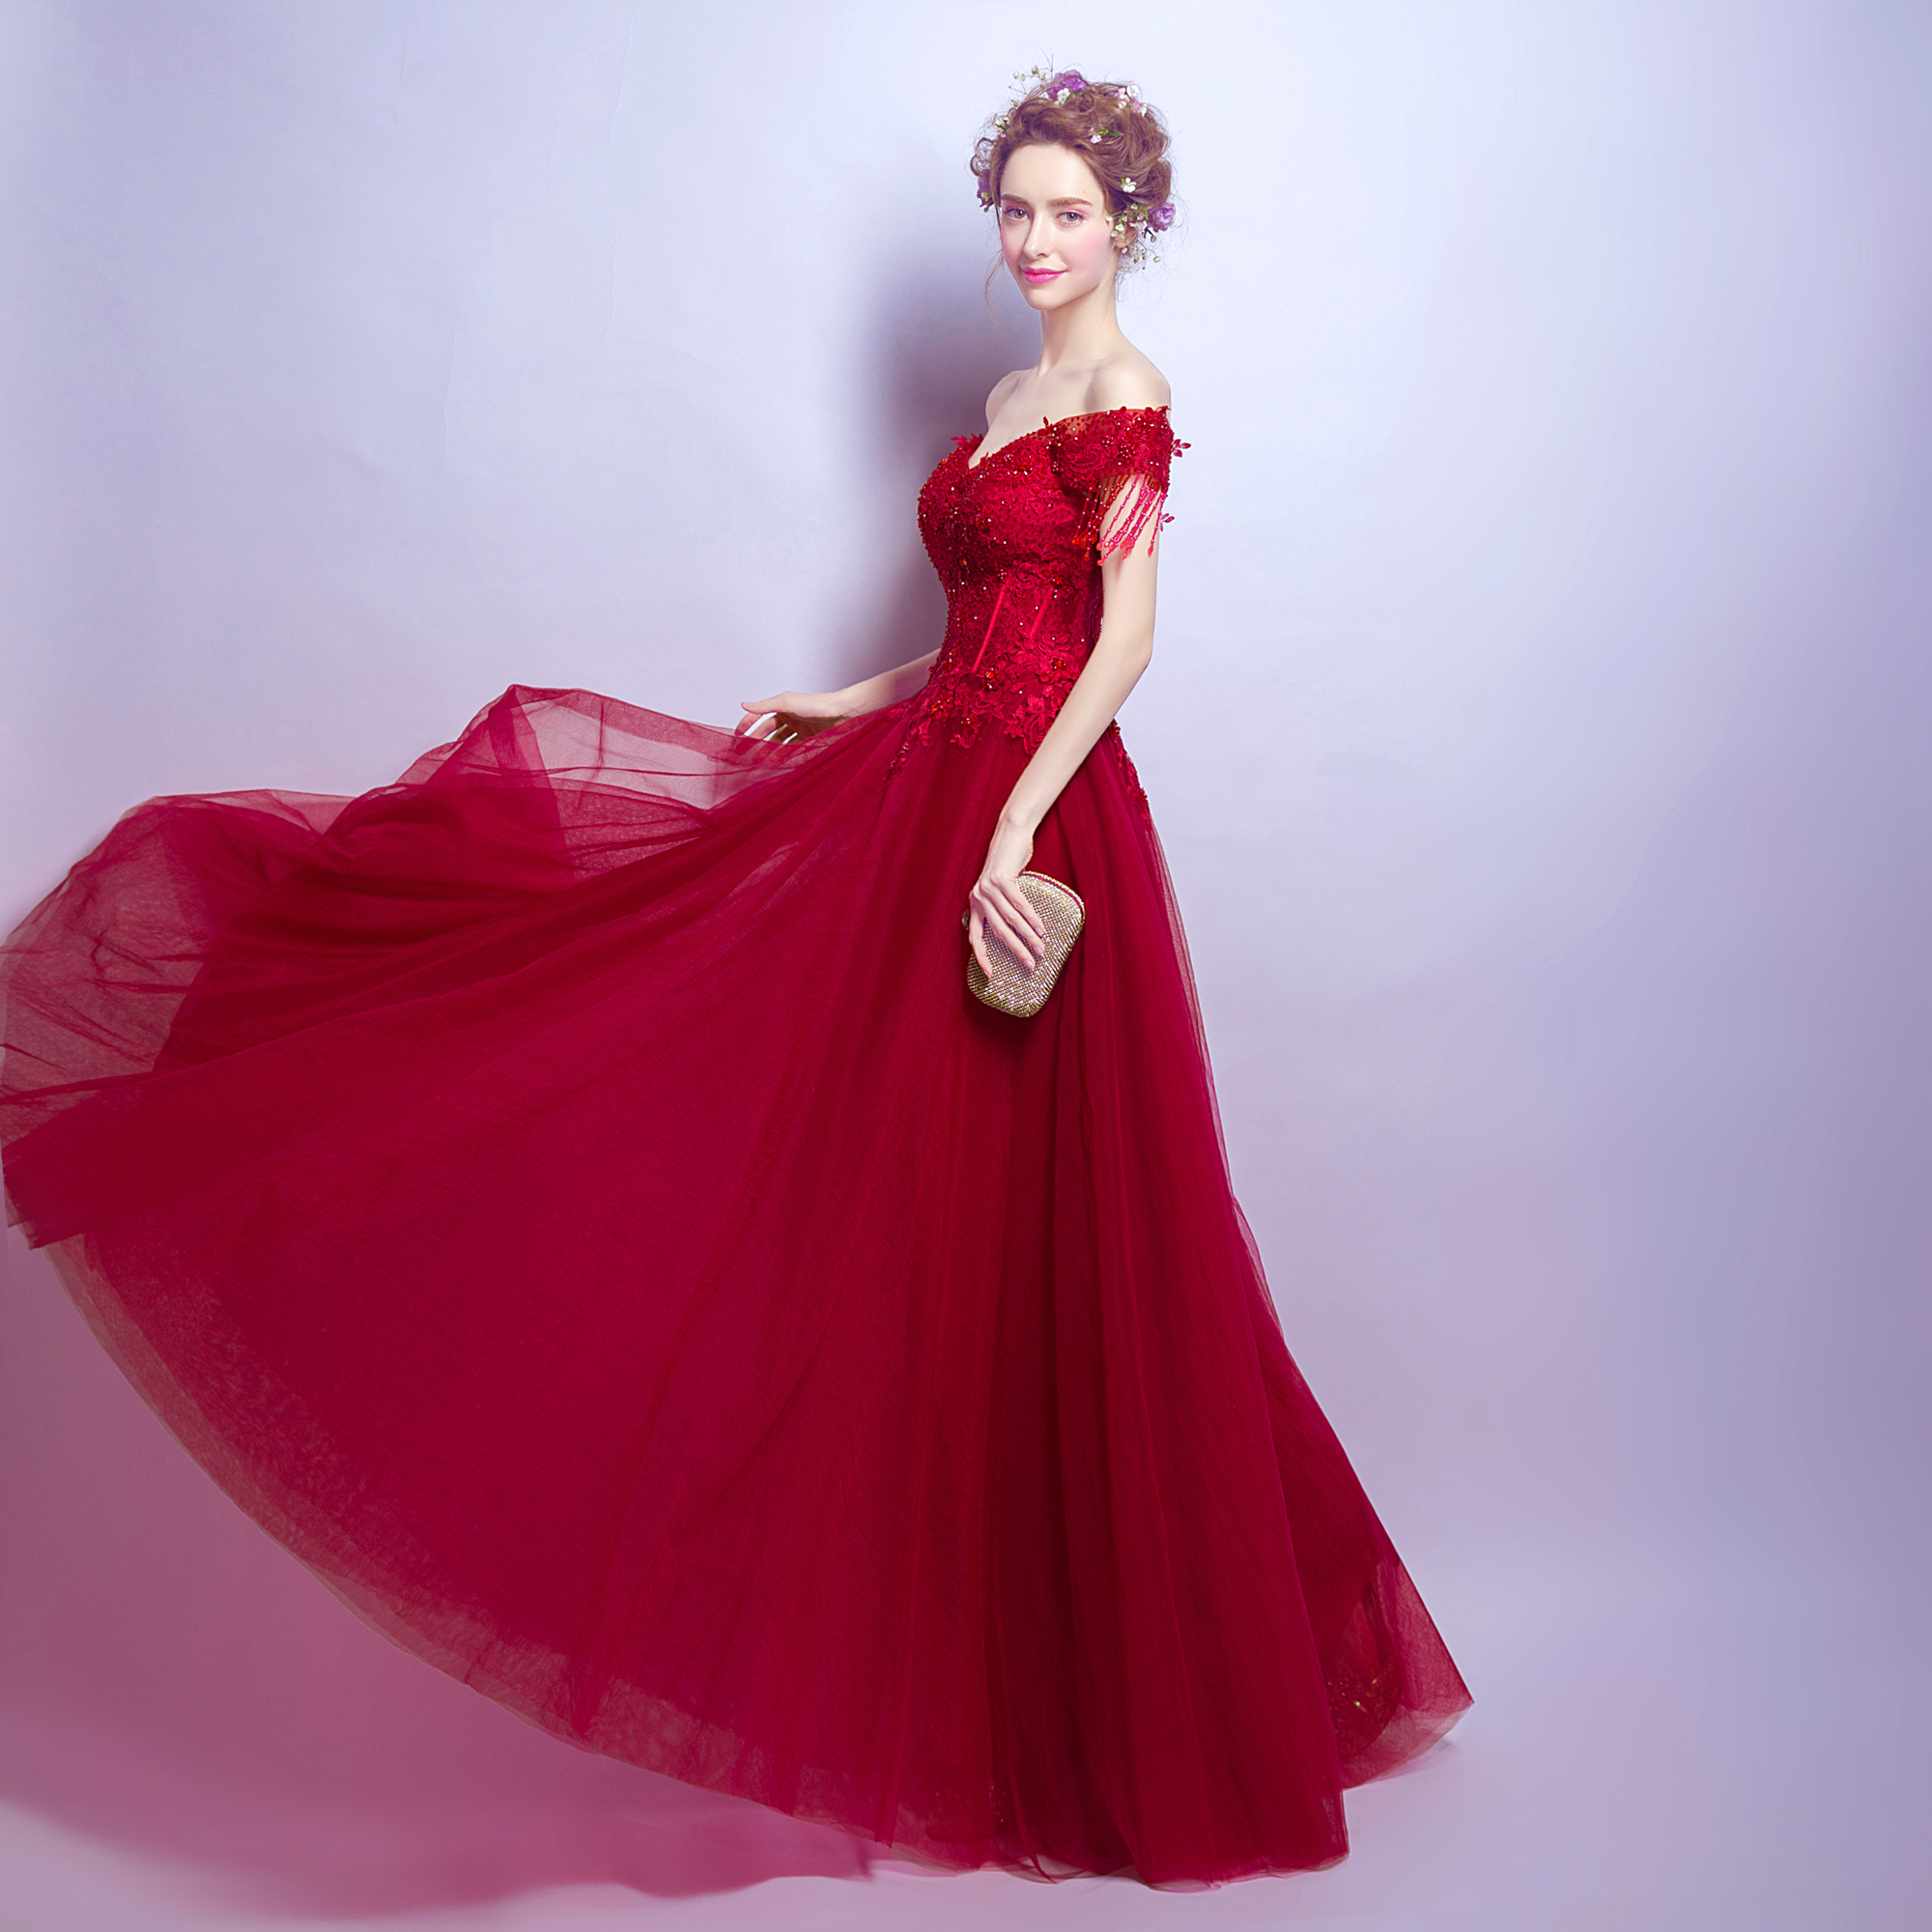 2017 new arrival stock maternity plus size bridal gown evening 2017 new arrival stock maternity plus size bridal gown evening dress night long hot special occasion graduation red lace 2800 in evening dresses from ombrellifo Image collections